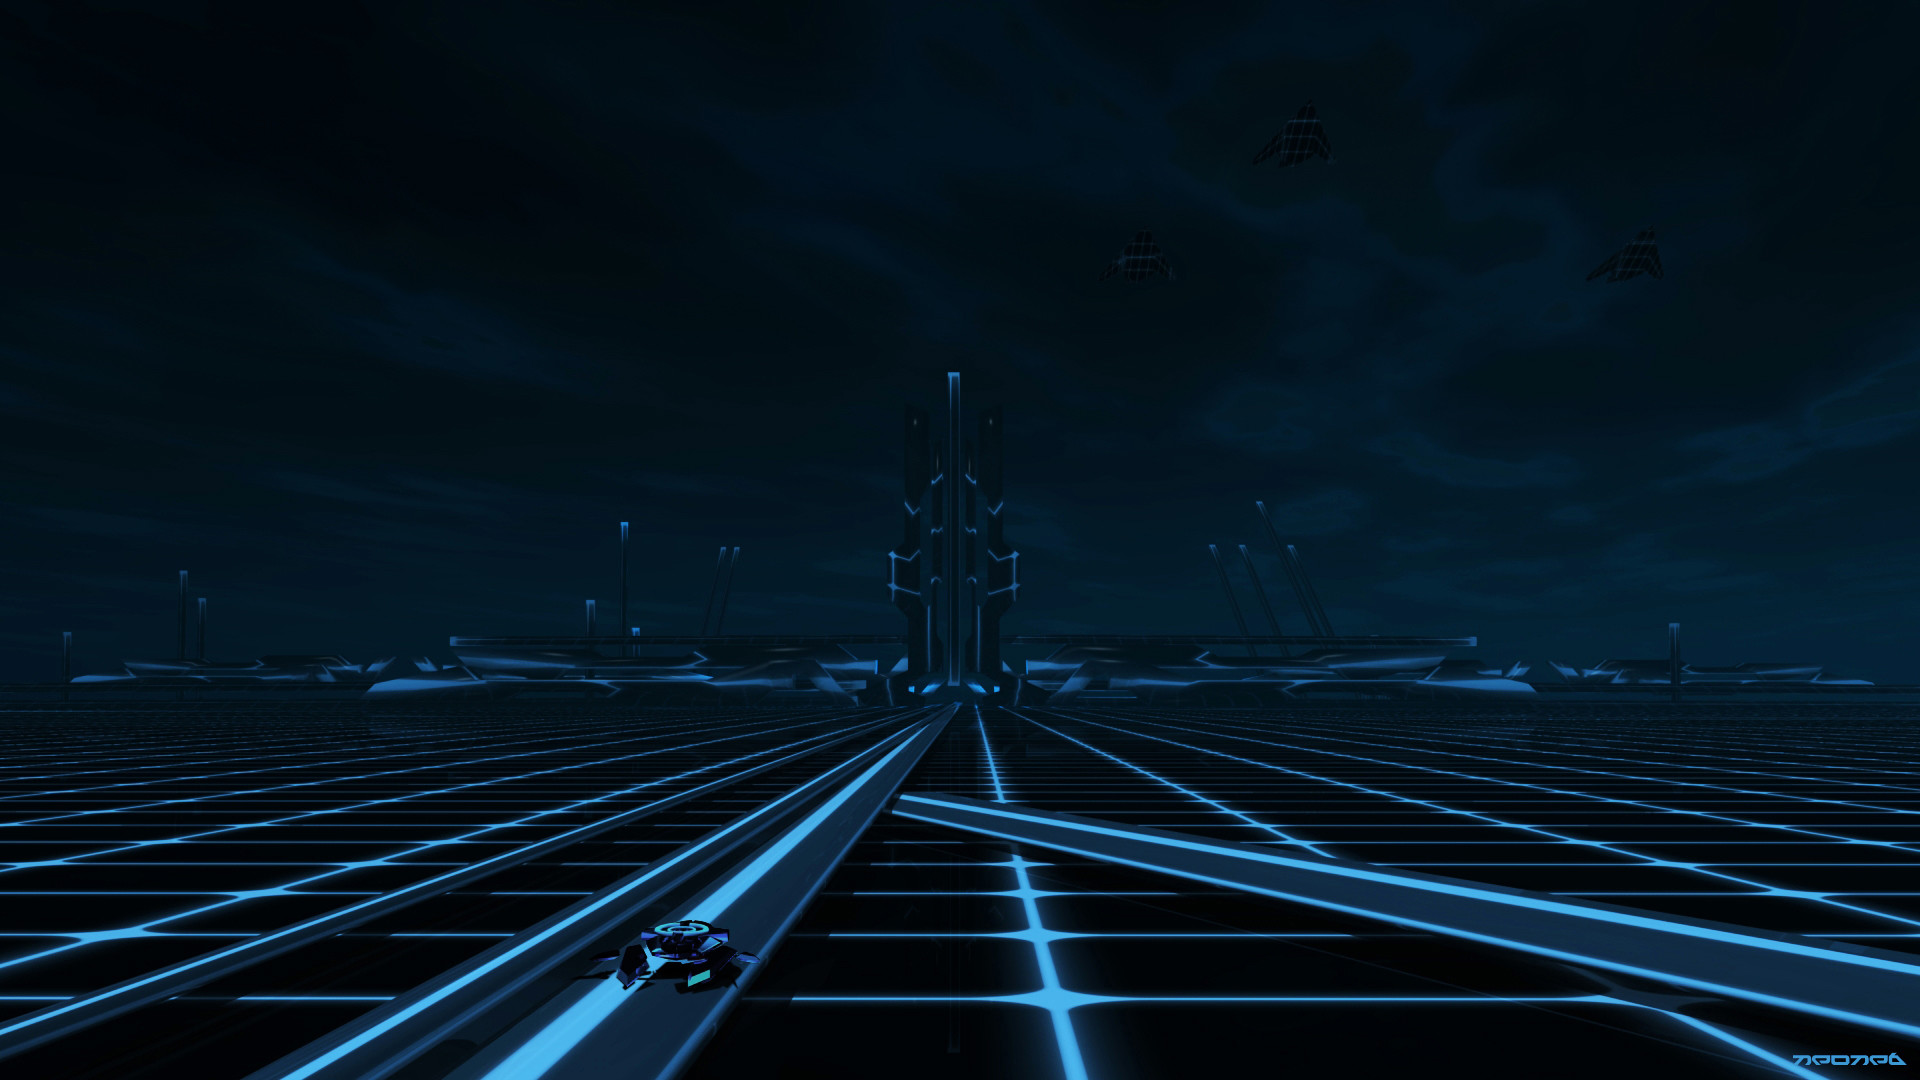 tron background (74+ images)